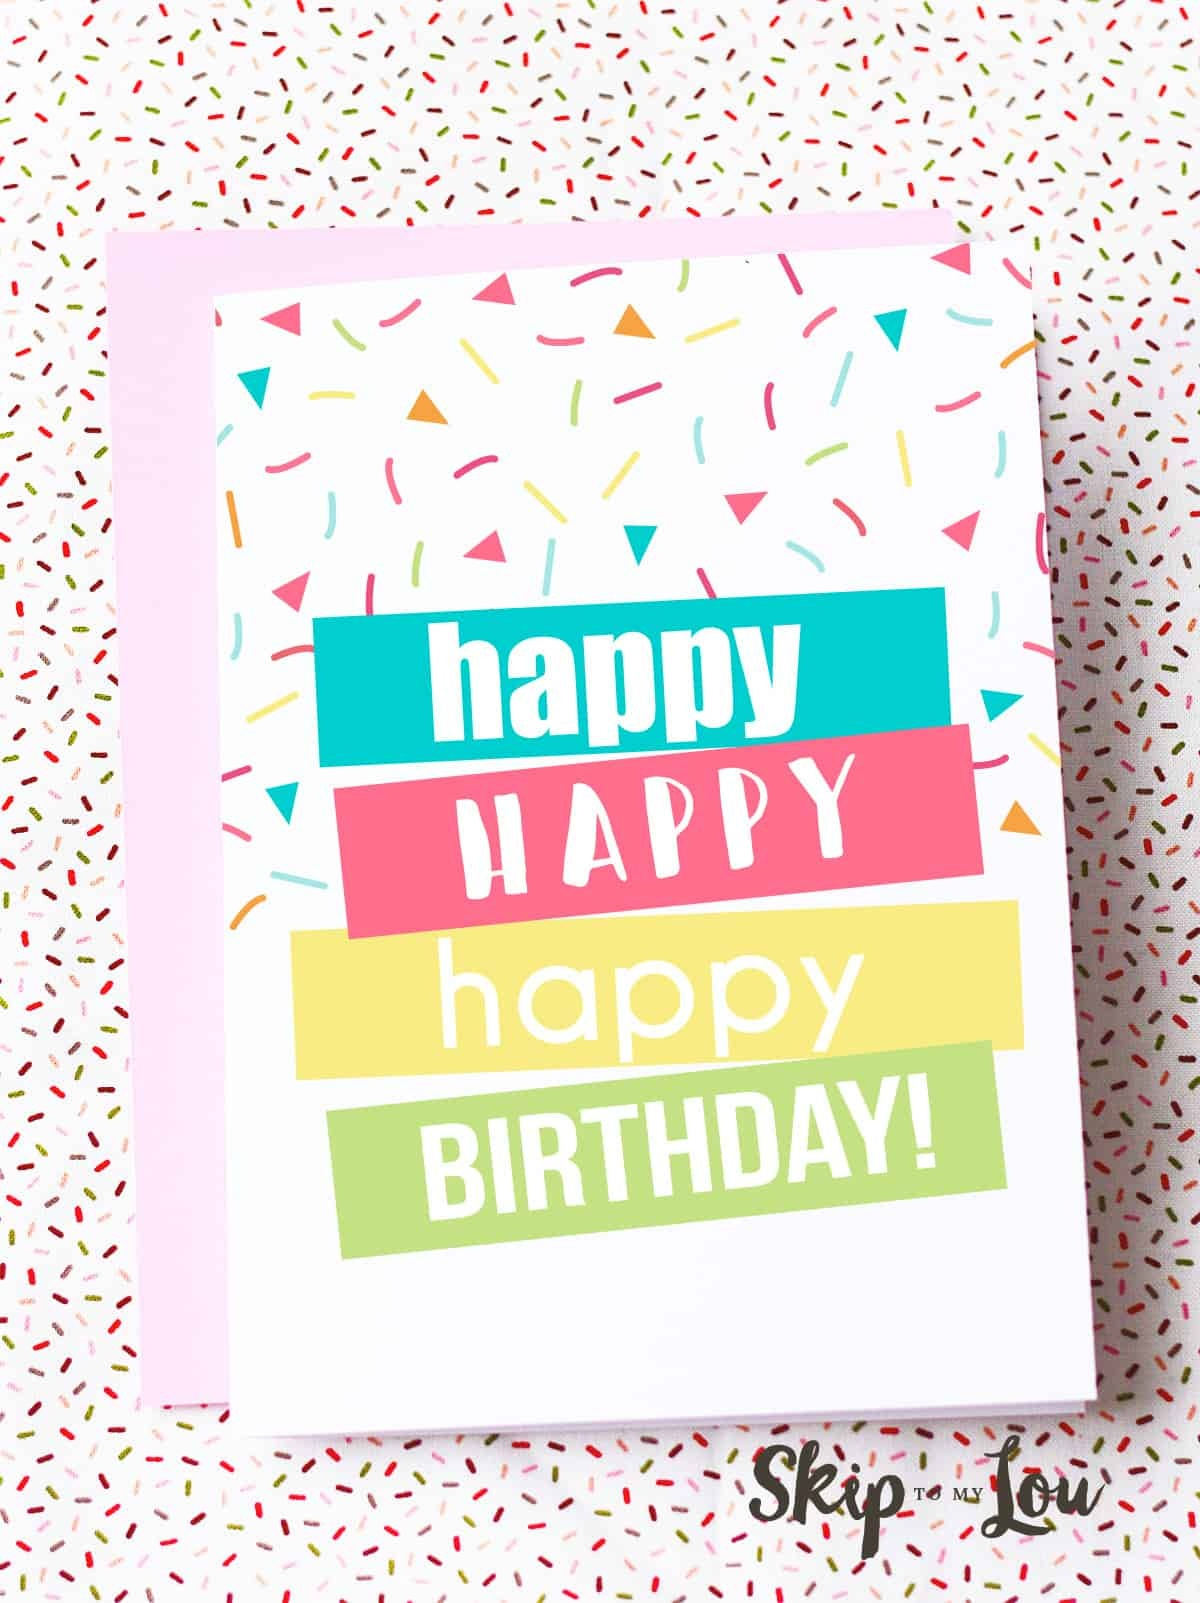 Free Printable Birthday Cards | Skip To My Lou - Free Printable Bday Cards